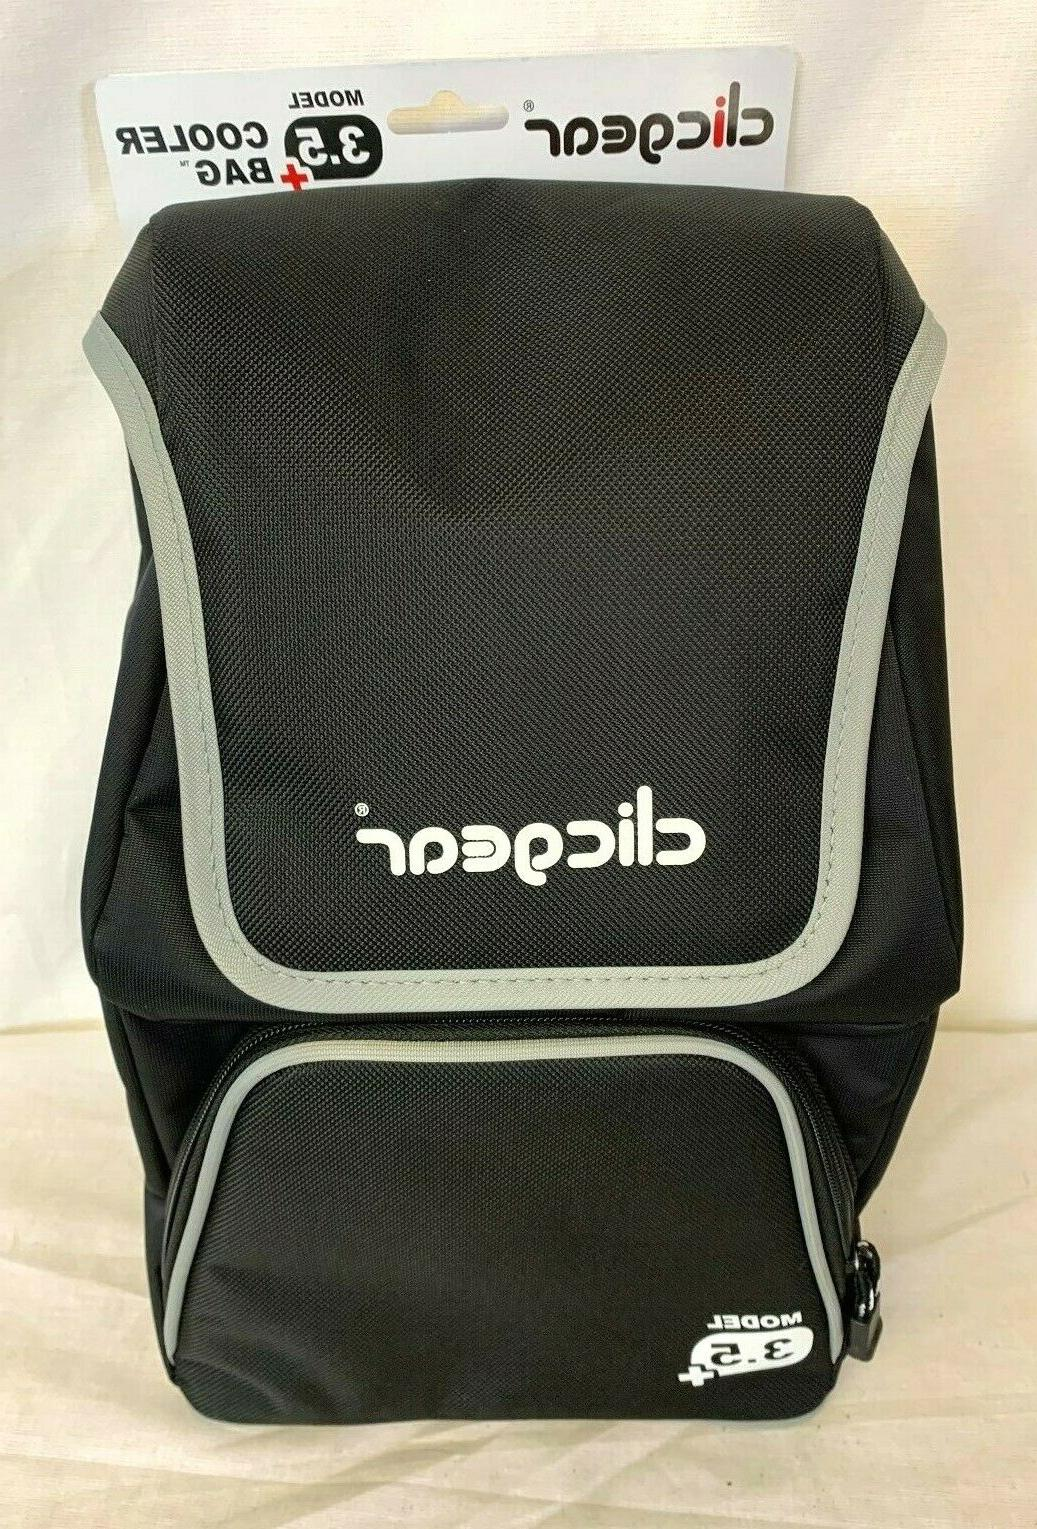 cooler bag model 3 5 new golf